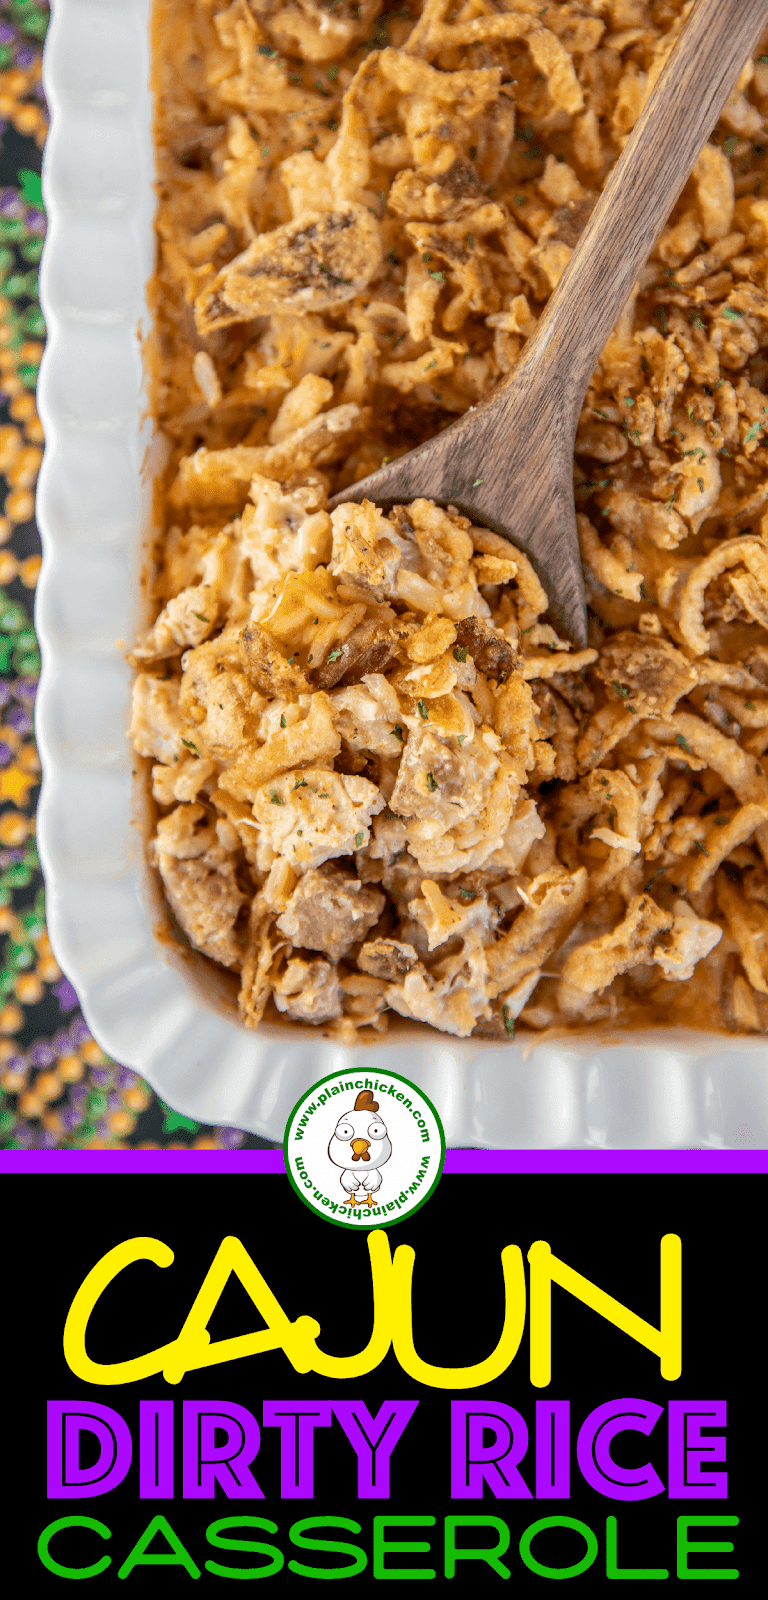 scooping dirty rice casserole from baking dish